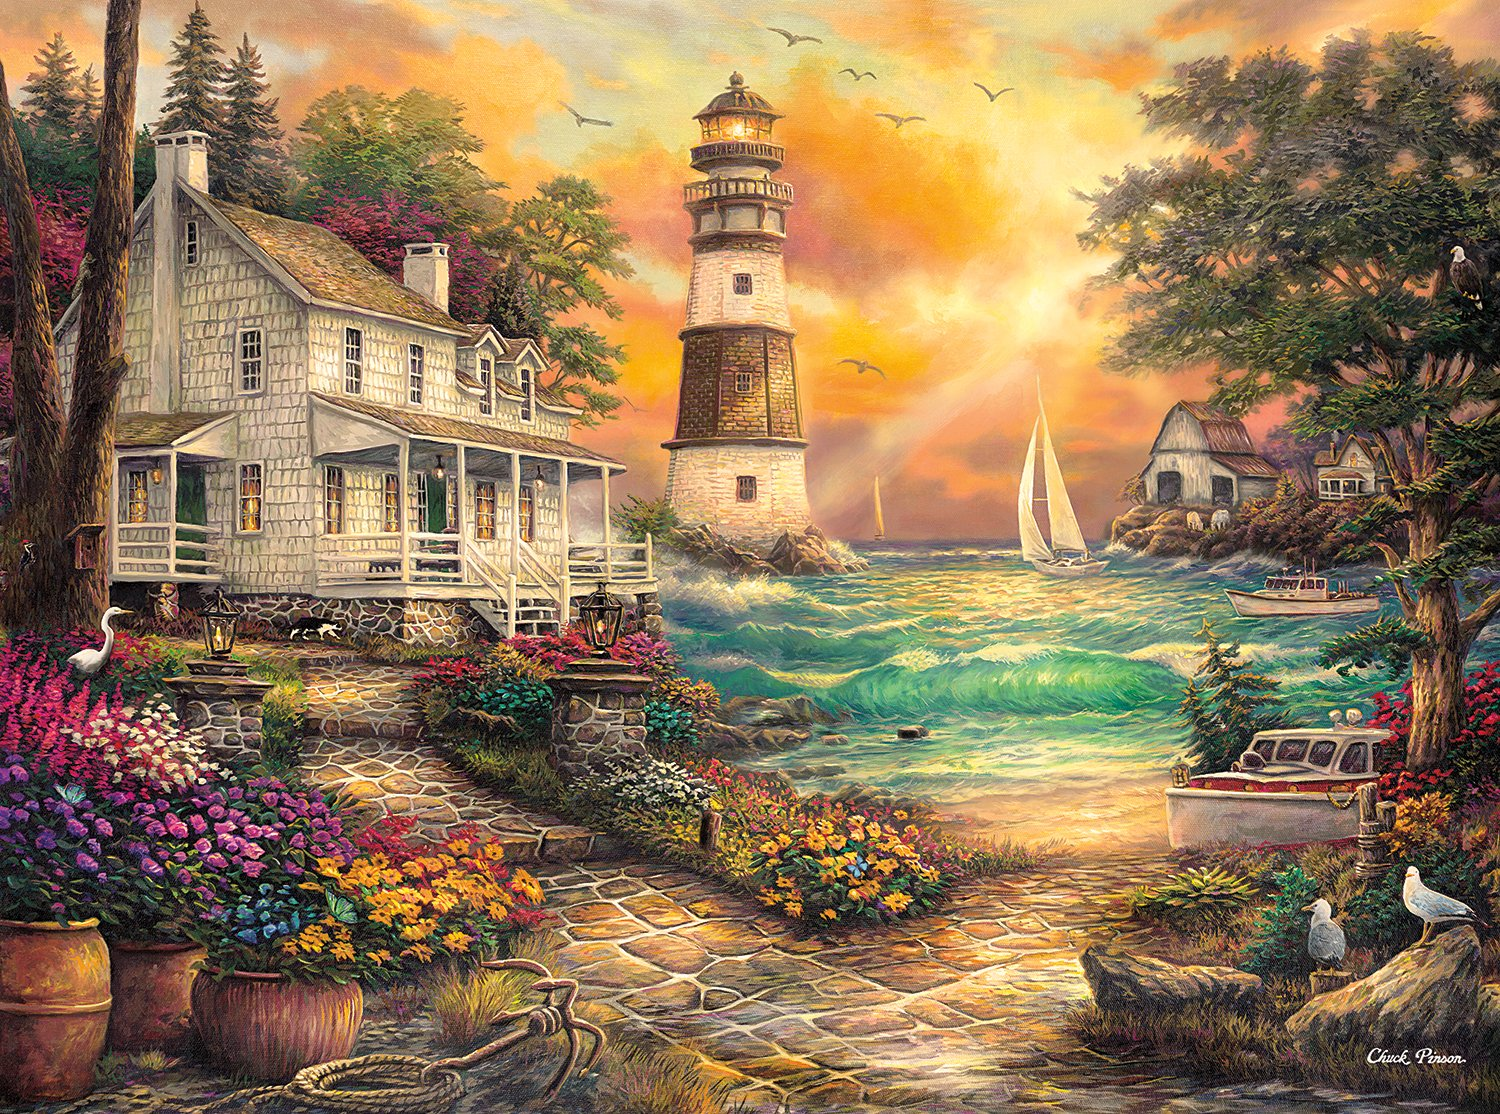 Buffalo Games - Chuck Pinson - Cottage By The Sea - 1000 Piece Jigsaw Puzzle 91p-wyQlmNL